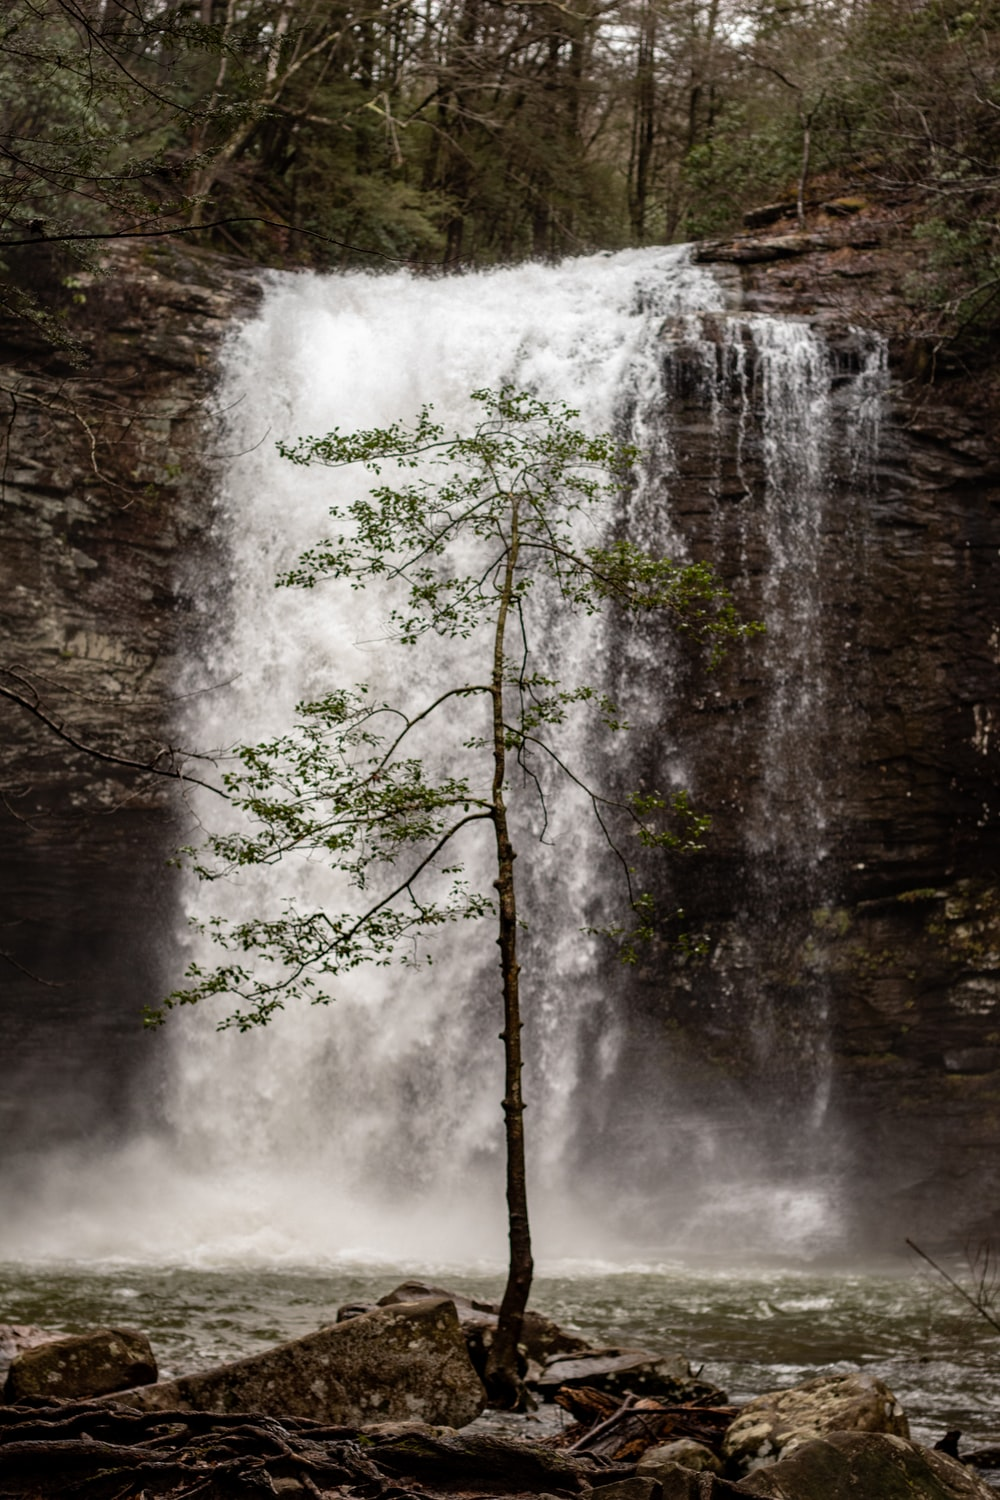 waterfalls surrounded by trees at daytime